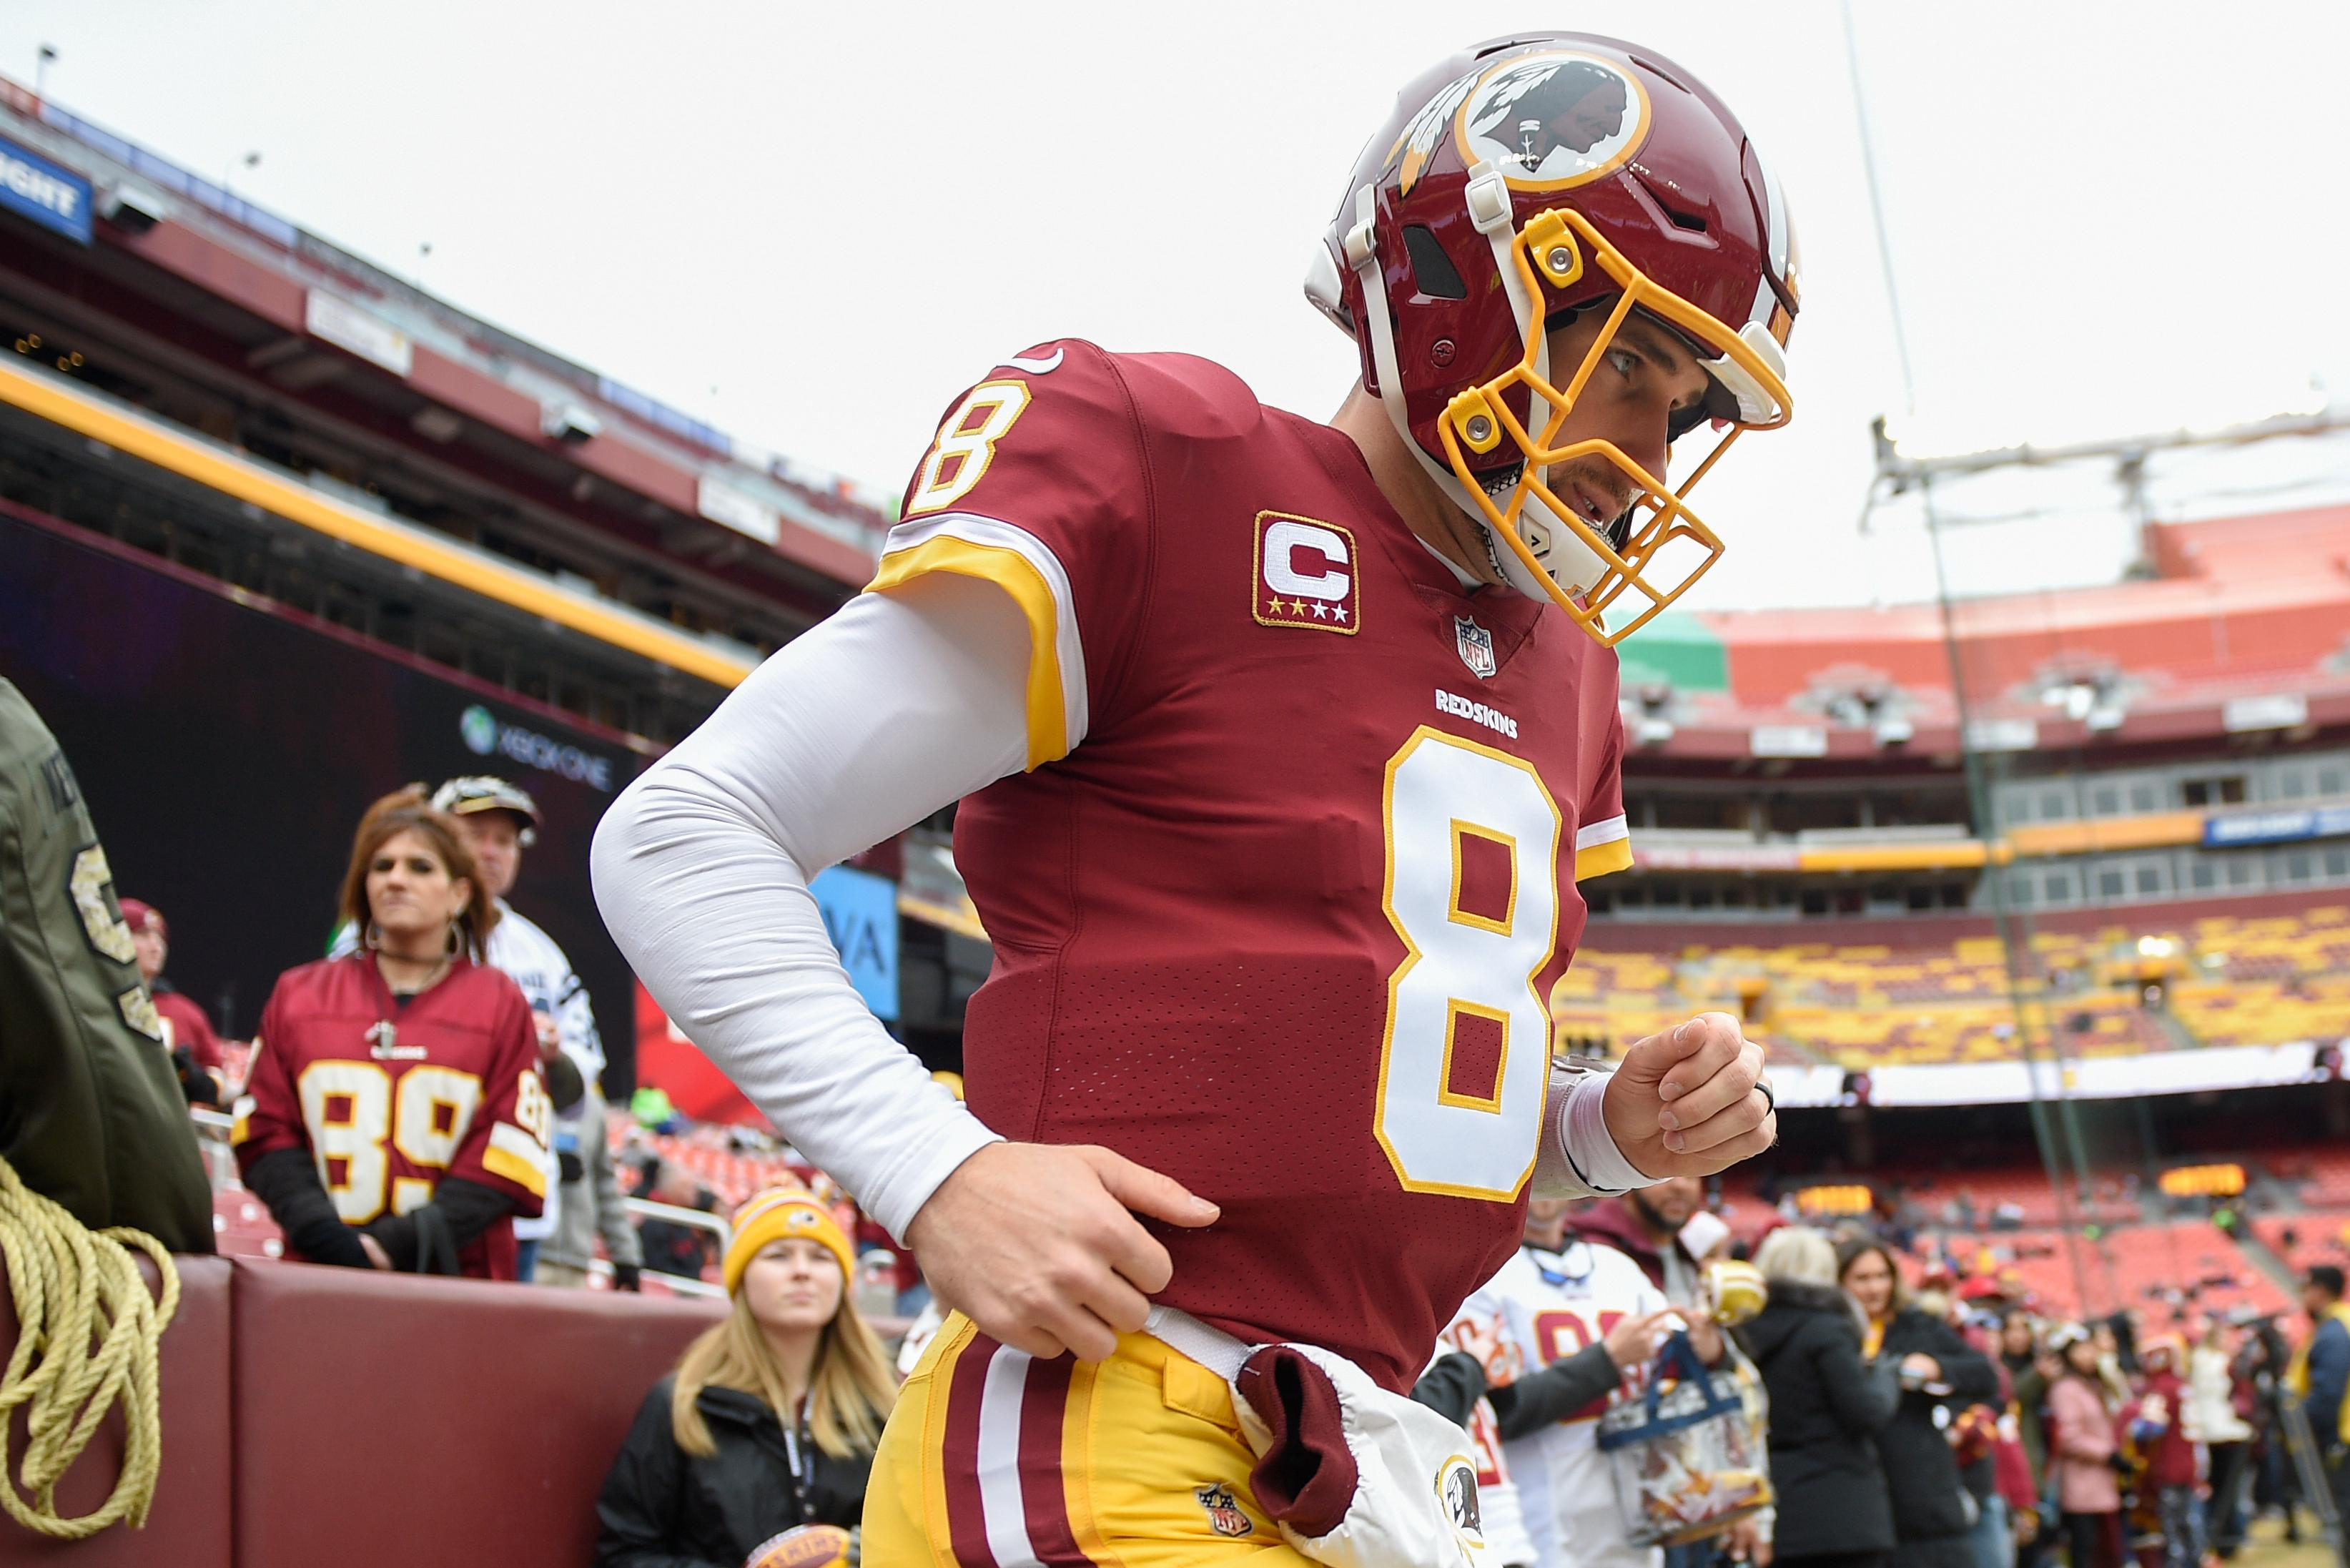 Washington Redskins quarterback Kirk Cousins (8) runs onto the field to warm up before an NFL football game against the Denver Broncos in Landover, Md., Sunday, Dec 24, 2017. (AP Photo/Nick Wass)